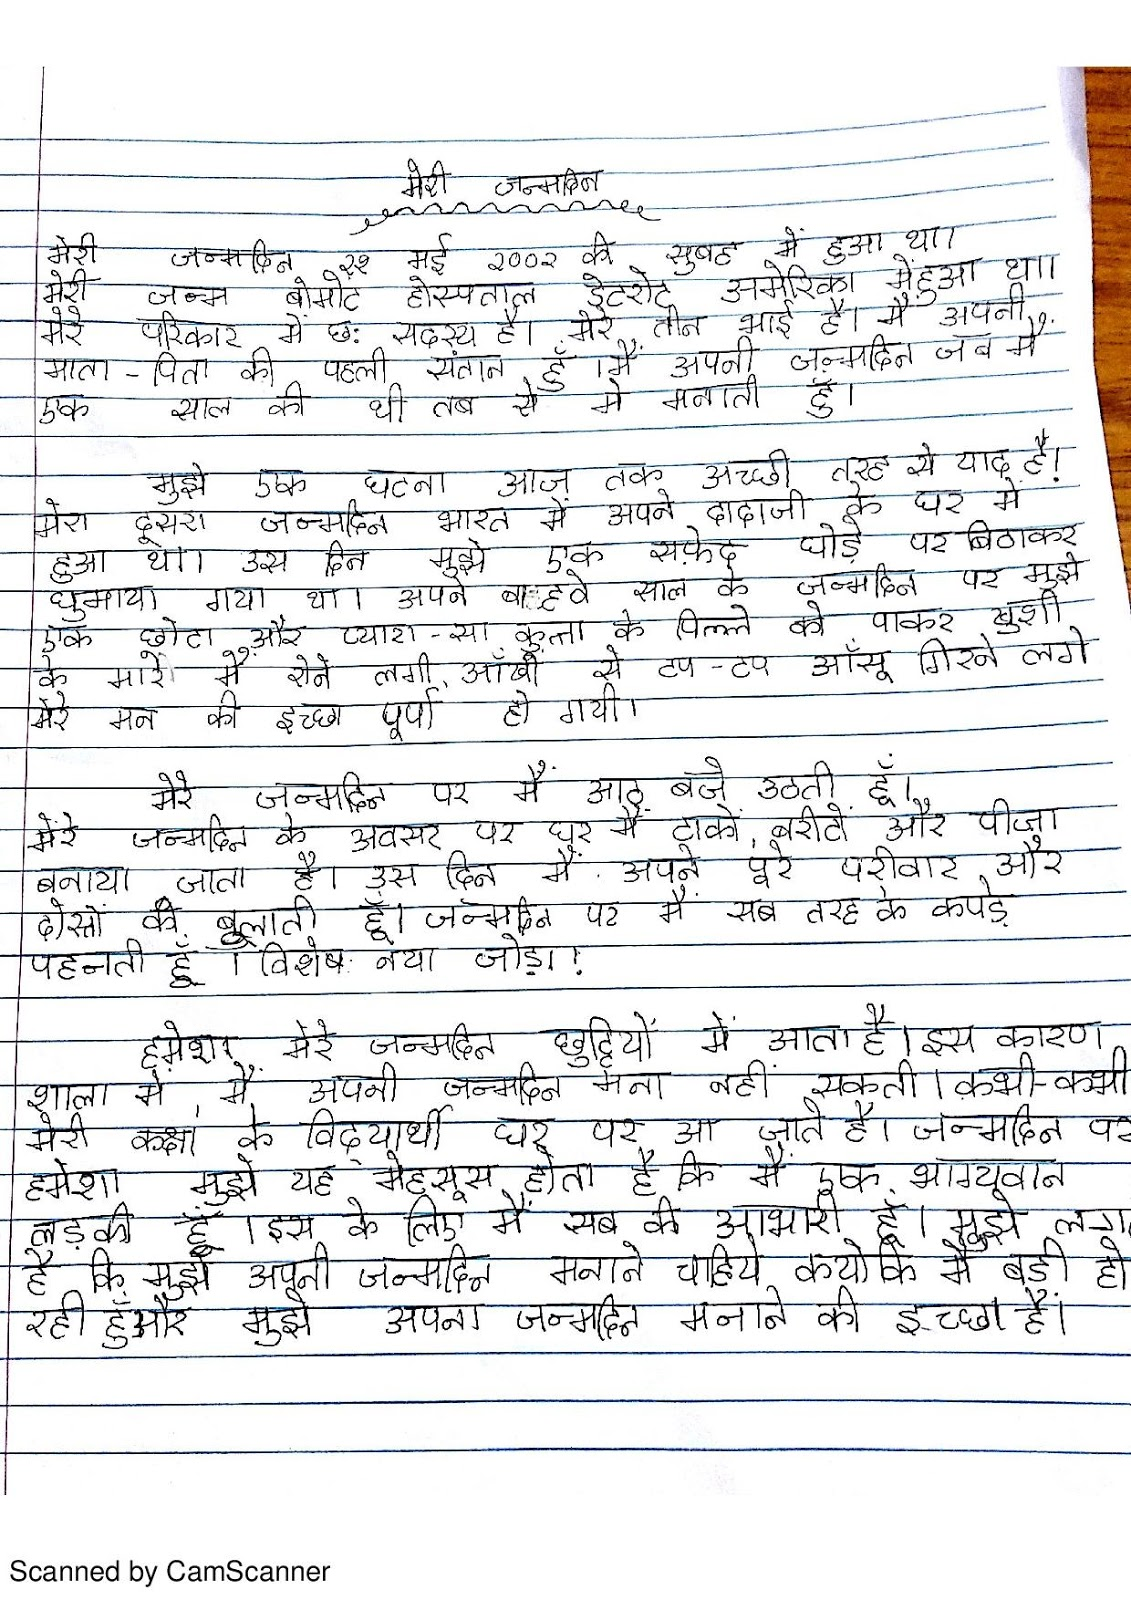 mera bagicha essay in hindi Compare contrast essay outline pdf essay on mera bagicha in hindi general opening statement essay examples charity appeals essay.